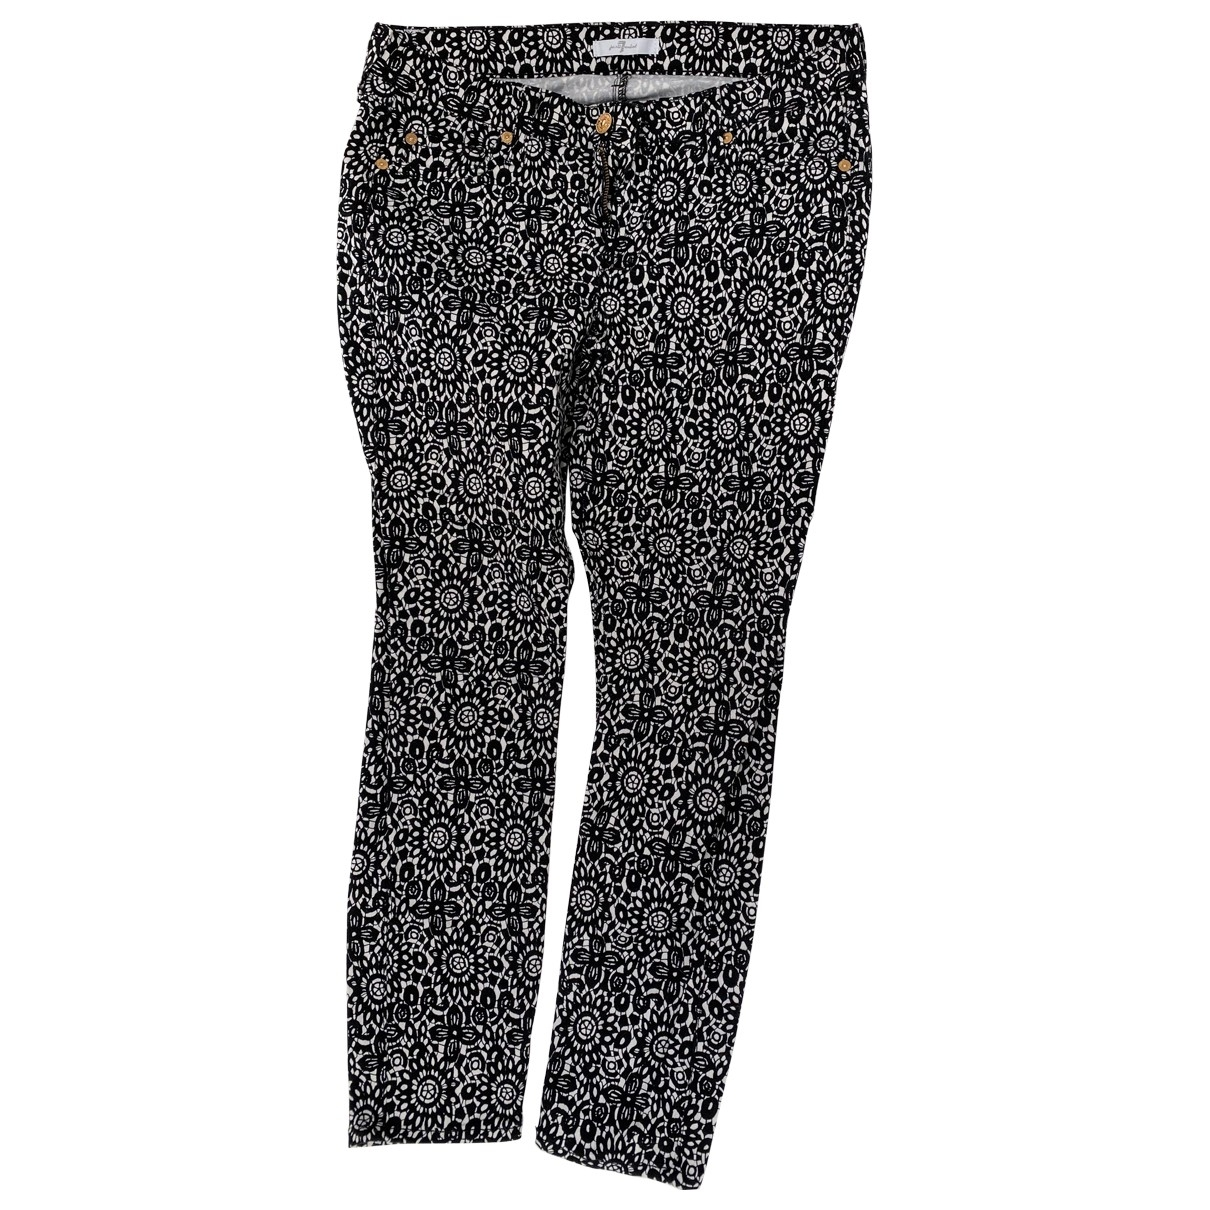 7 For All Mankind \N Black Cotton Jeans for Women 29 US